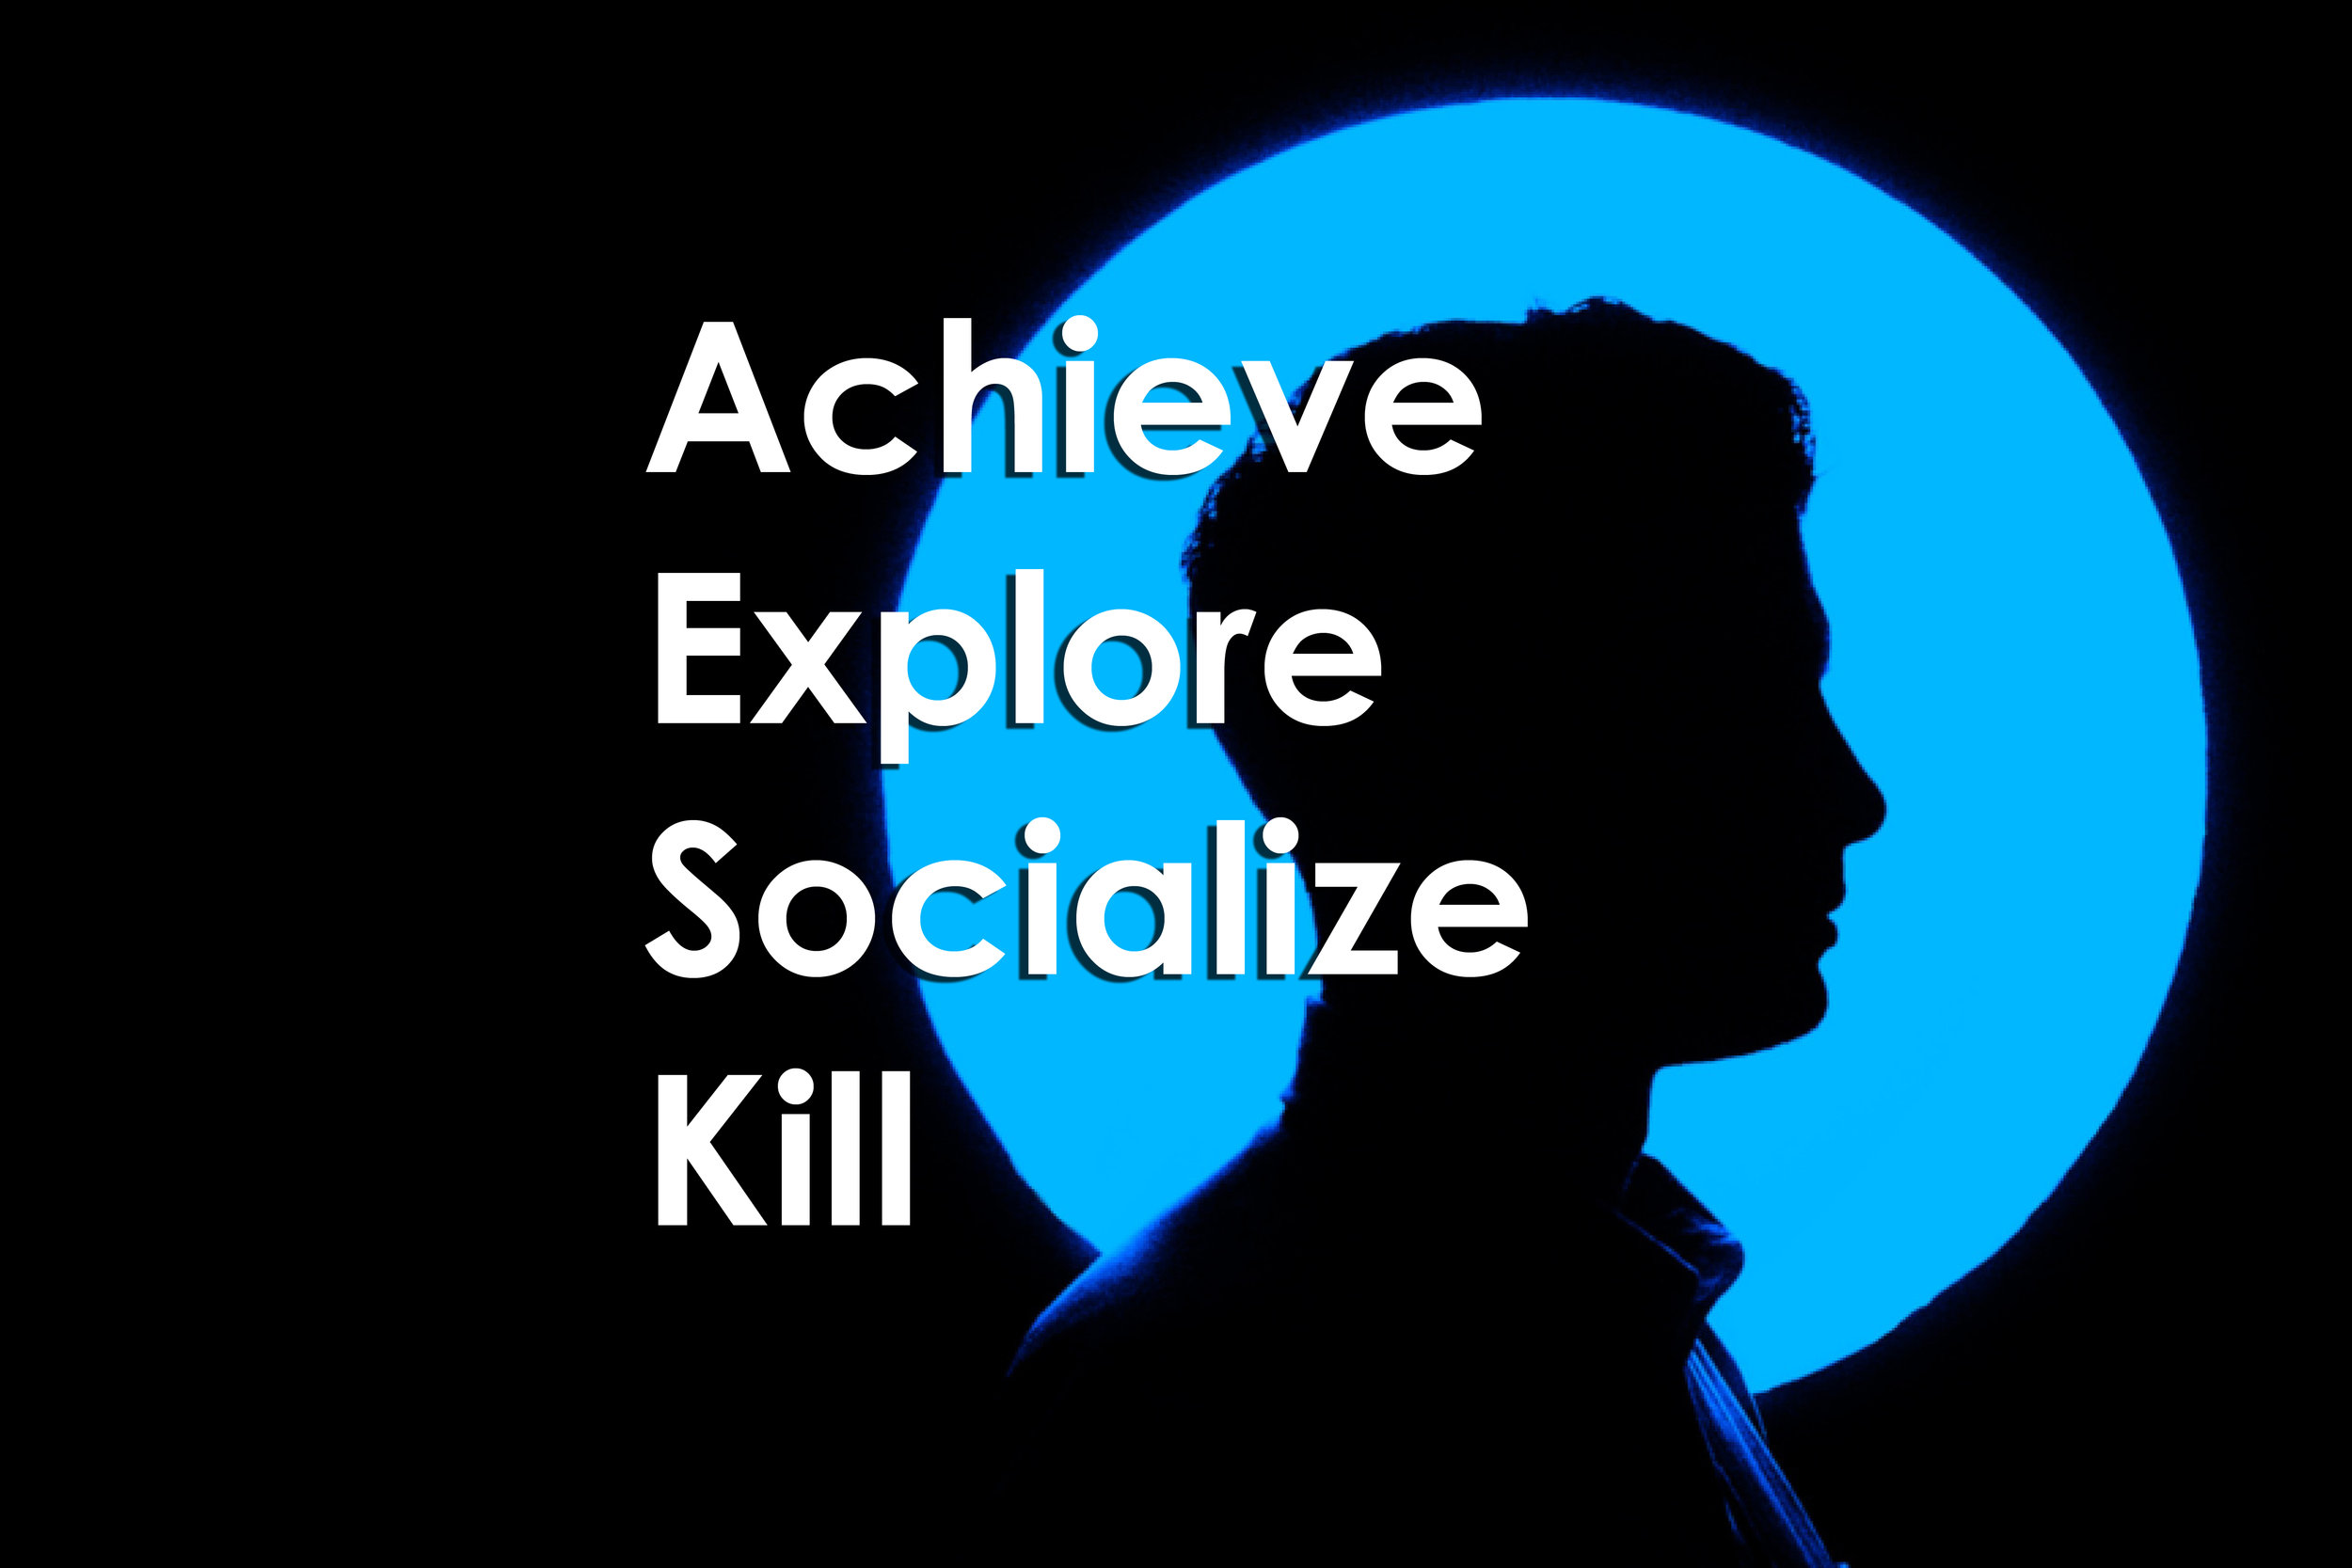 Achieve Explore Socialize Kill